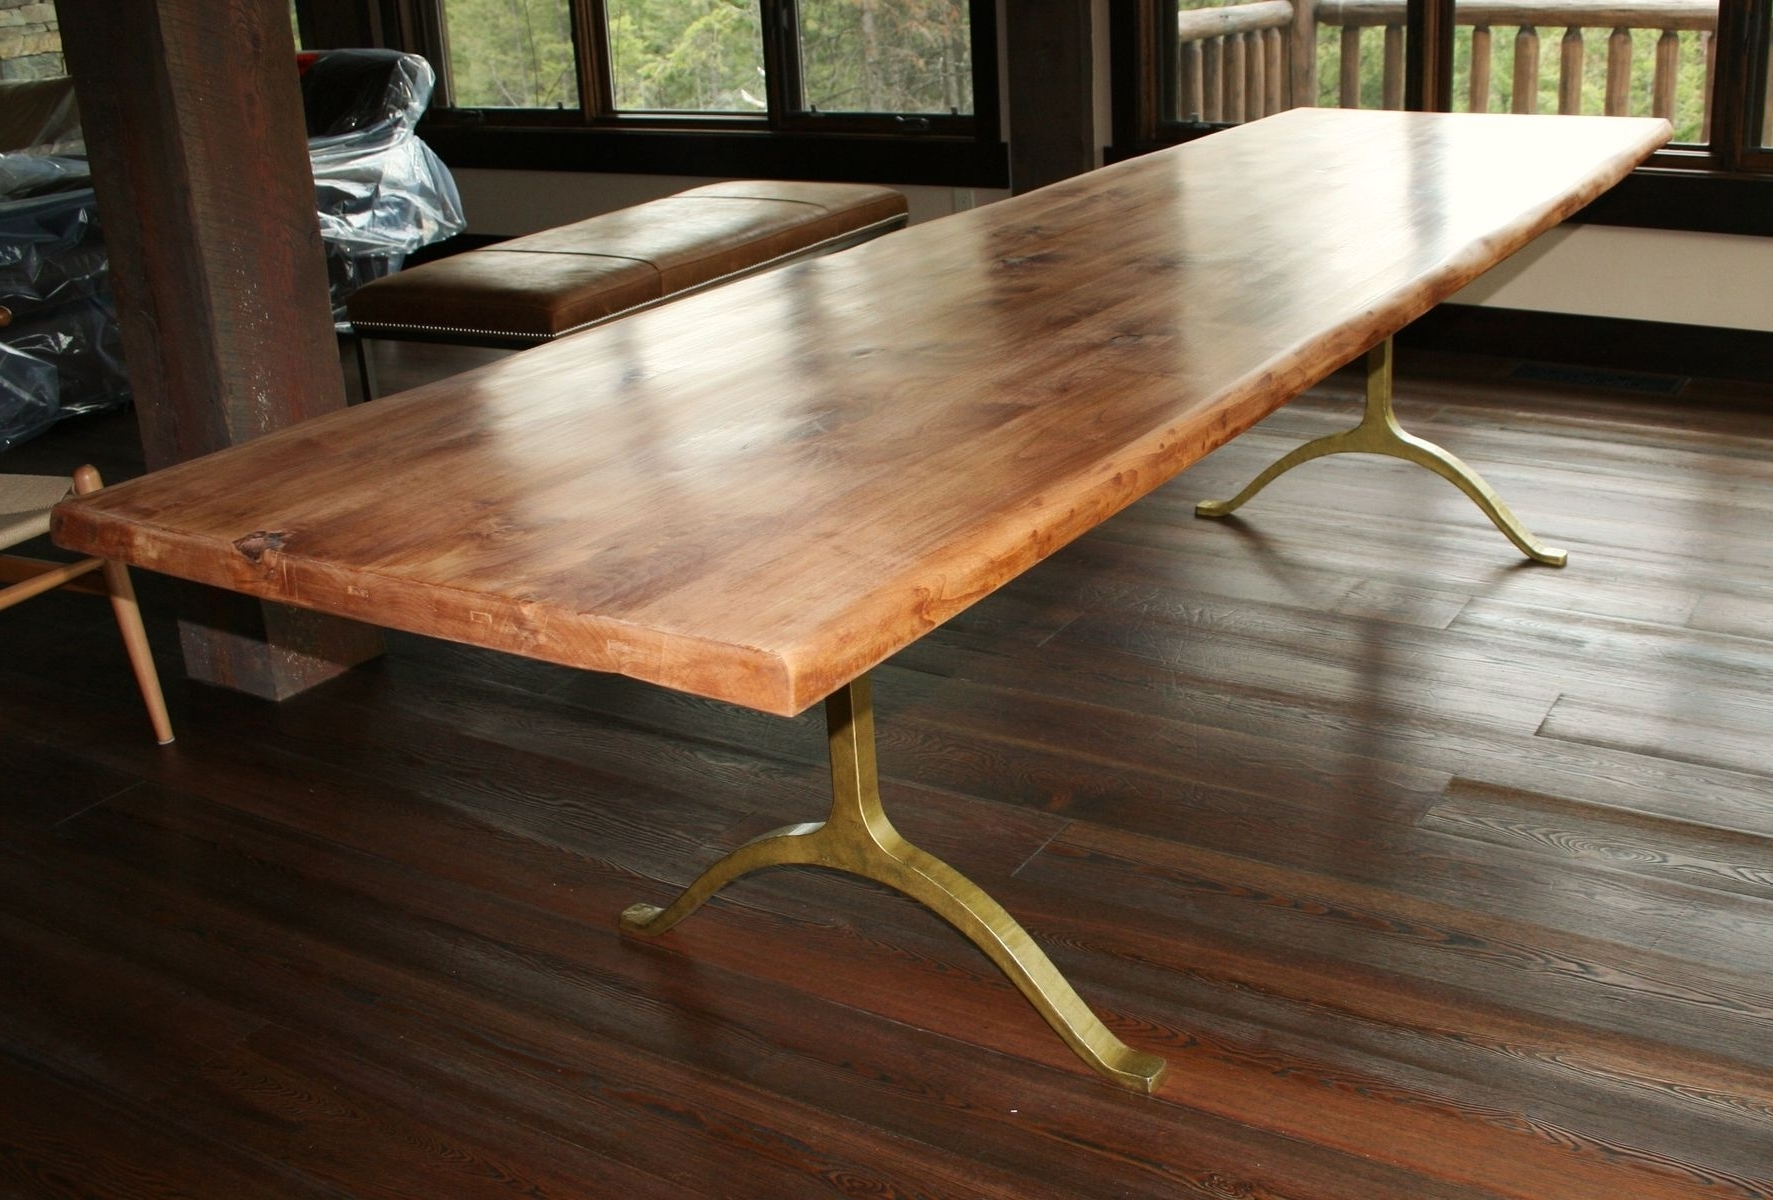 Rustic Dining Tables Pertaining To 2018 Handmade Rustic Dining Tableecho Peak Design (View 16 of 25)